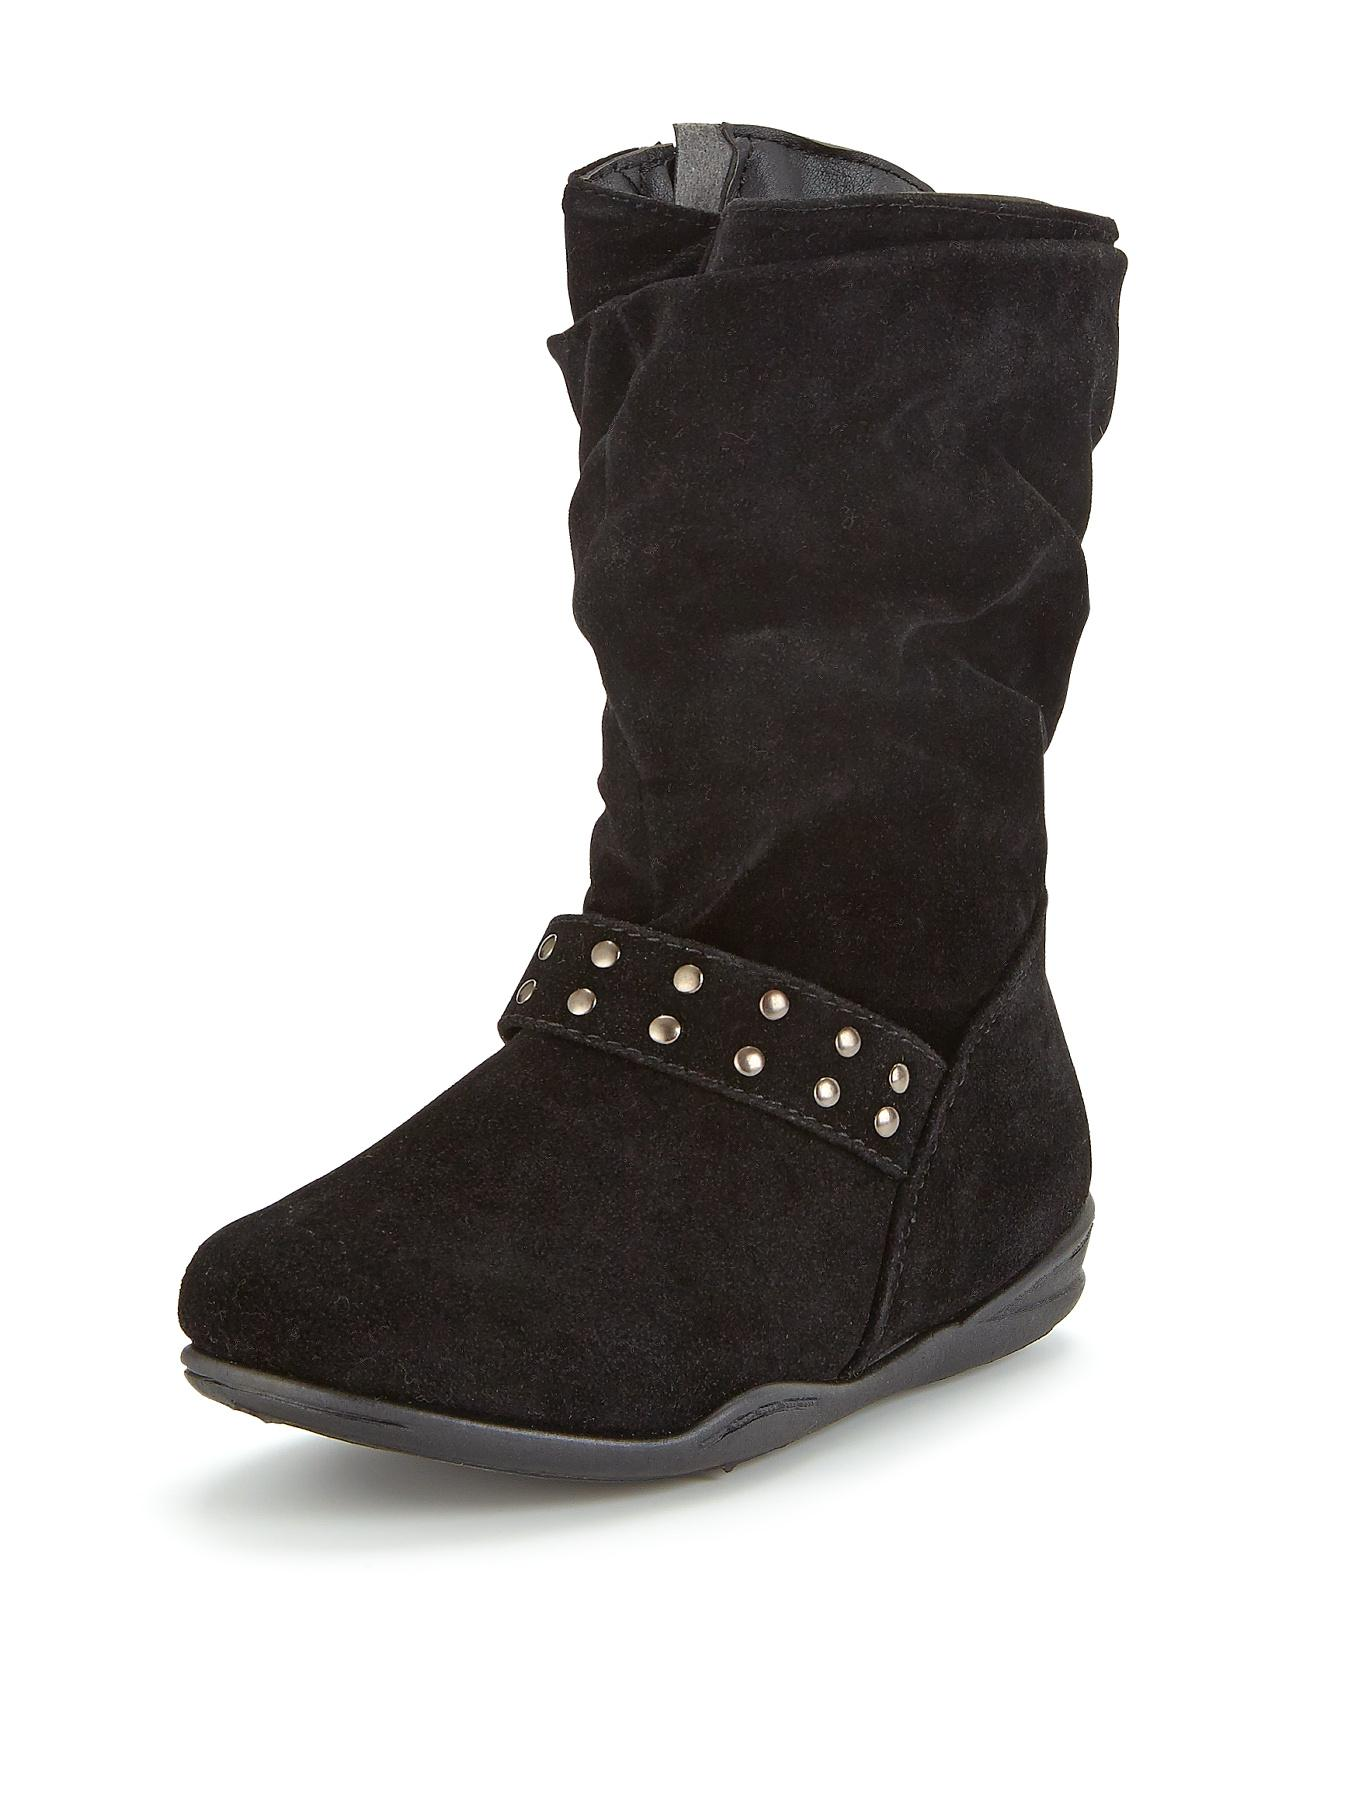 Maisie Slouchly Boots - Black, Black